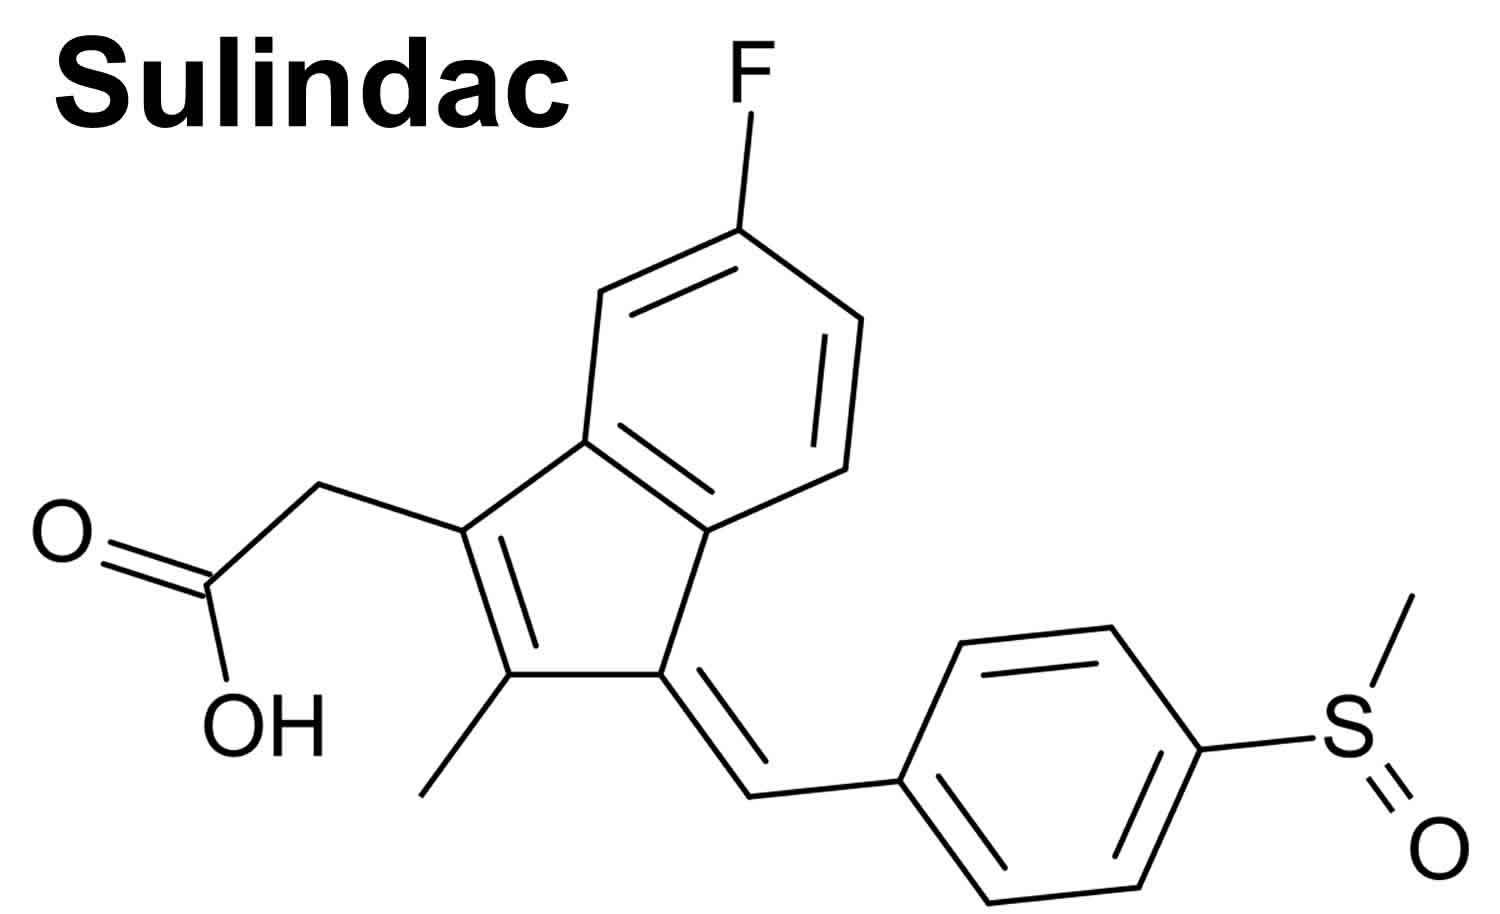 Sulindac medication, uses, precautions, dosage and